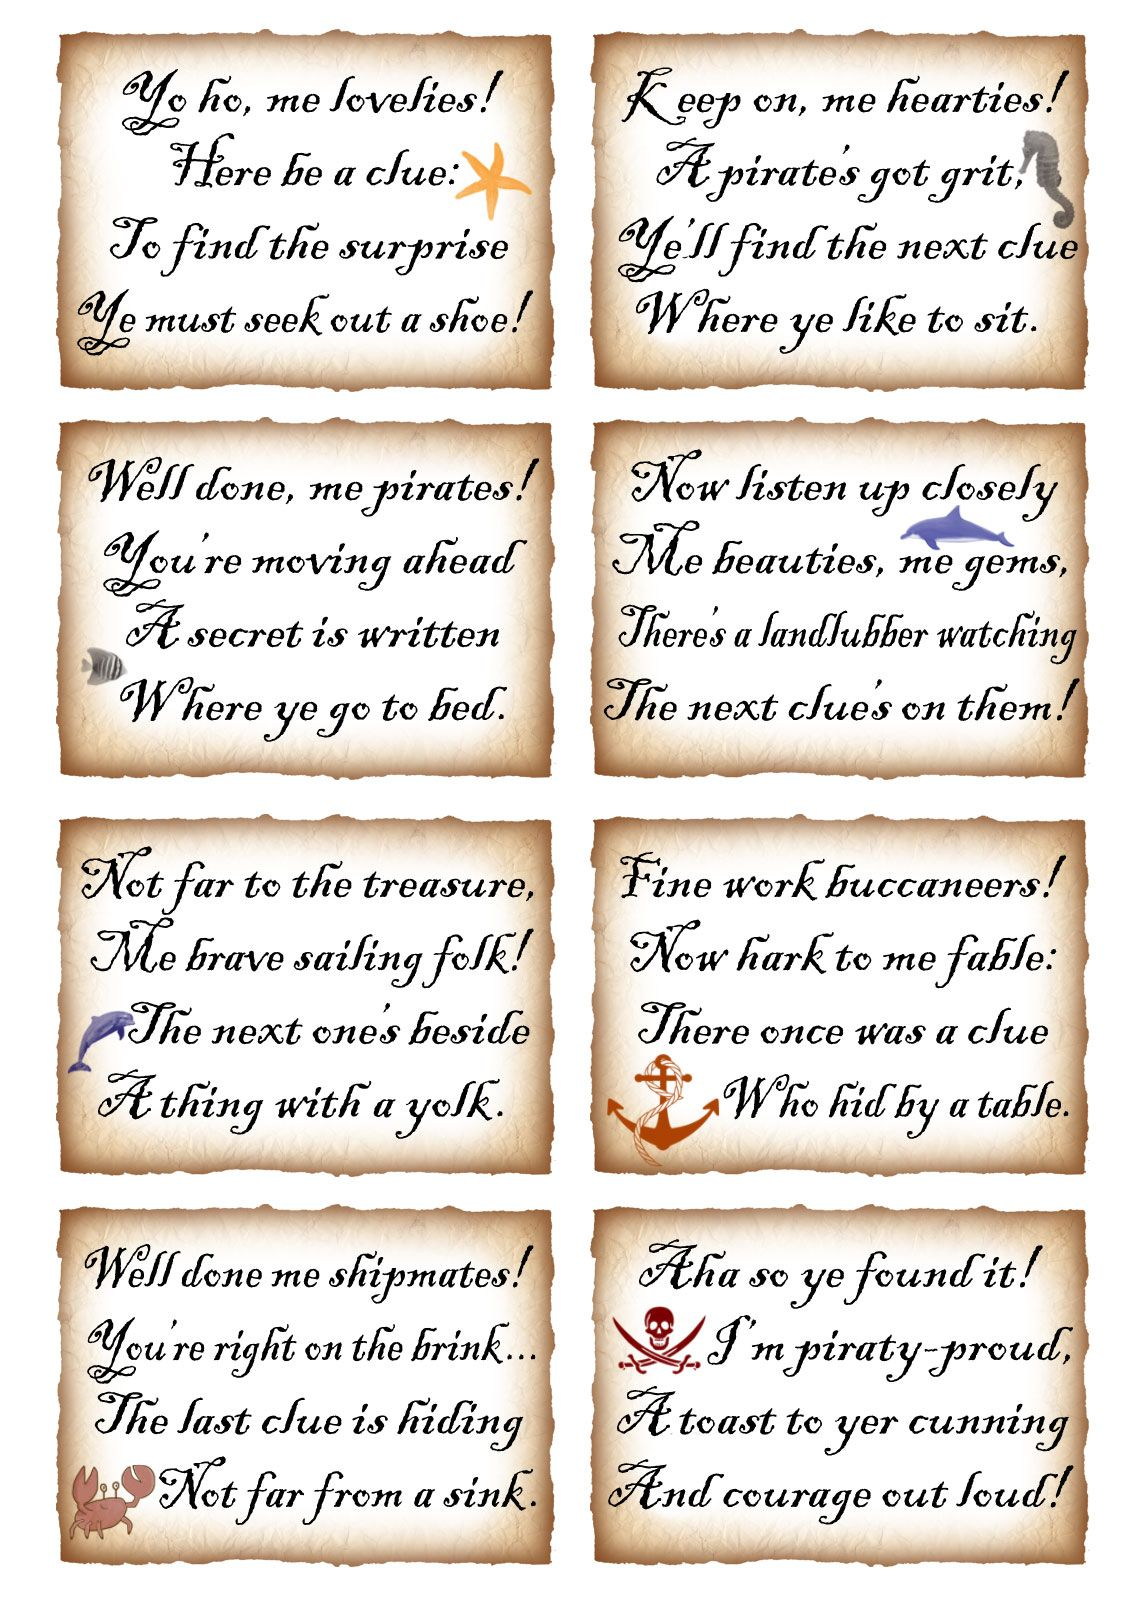 This Week We Ve Put Together Two Sets Of Rhyming Clues For Treasure Hunts One Is A Pirate Theme